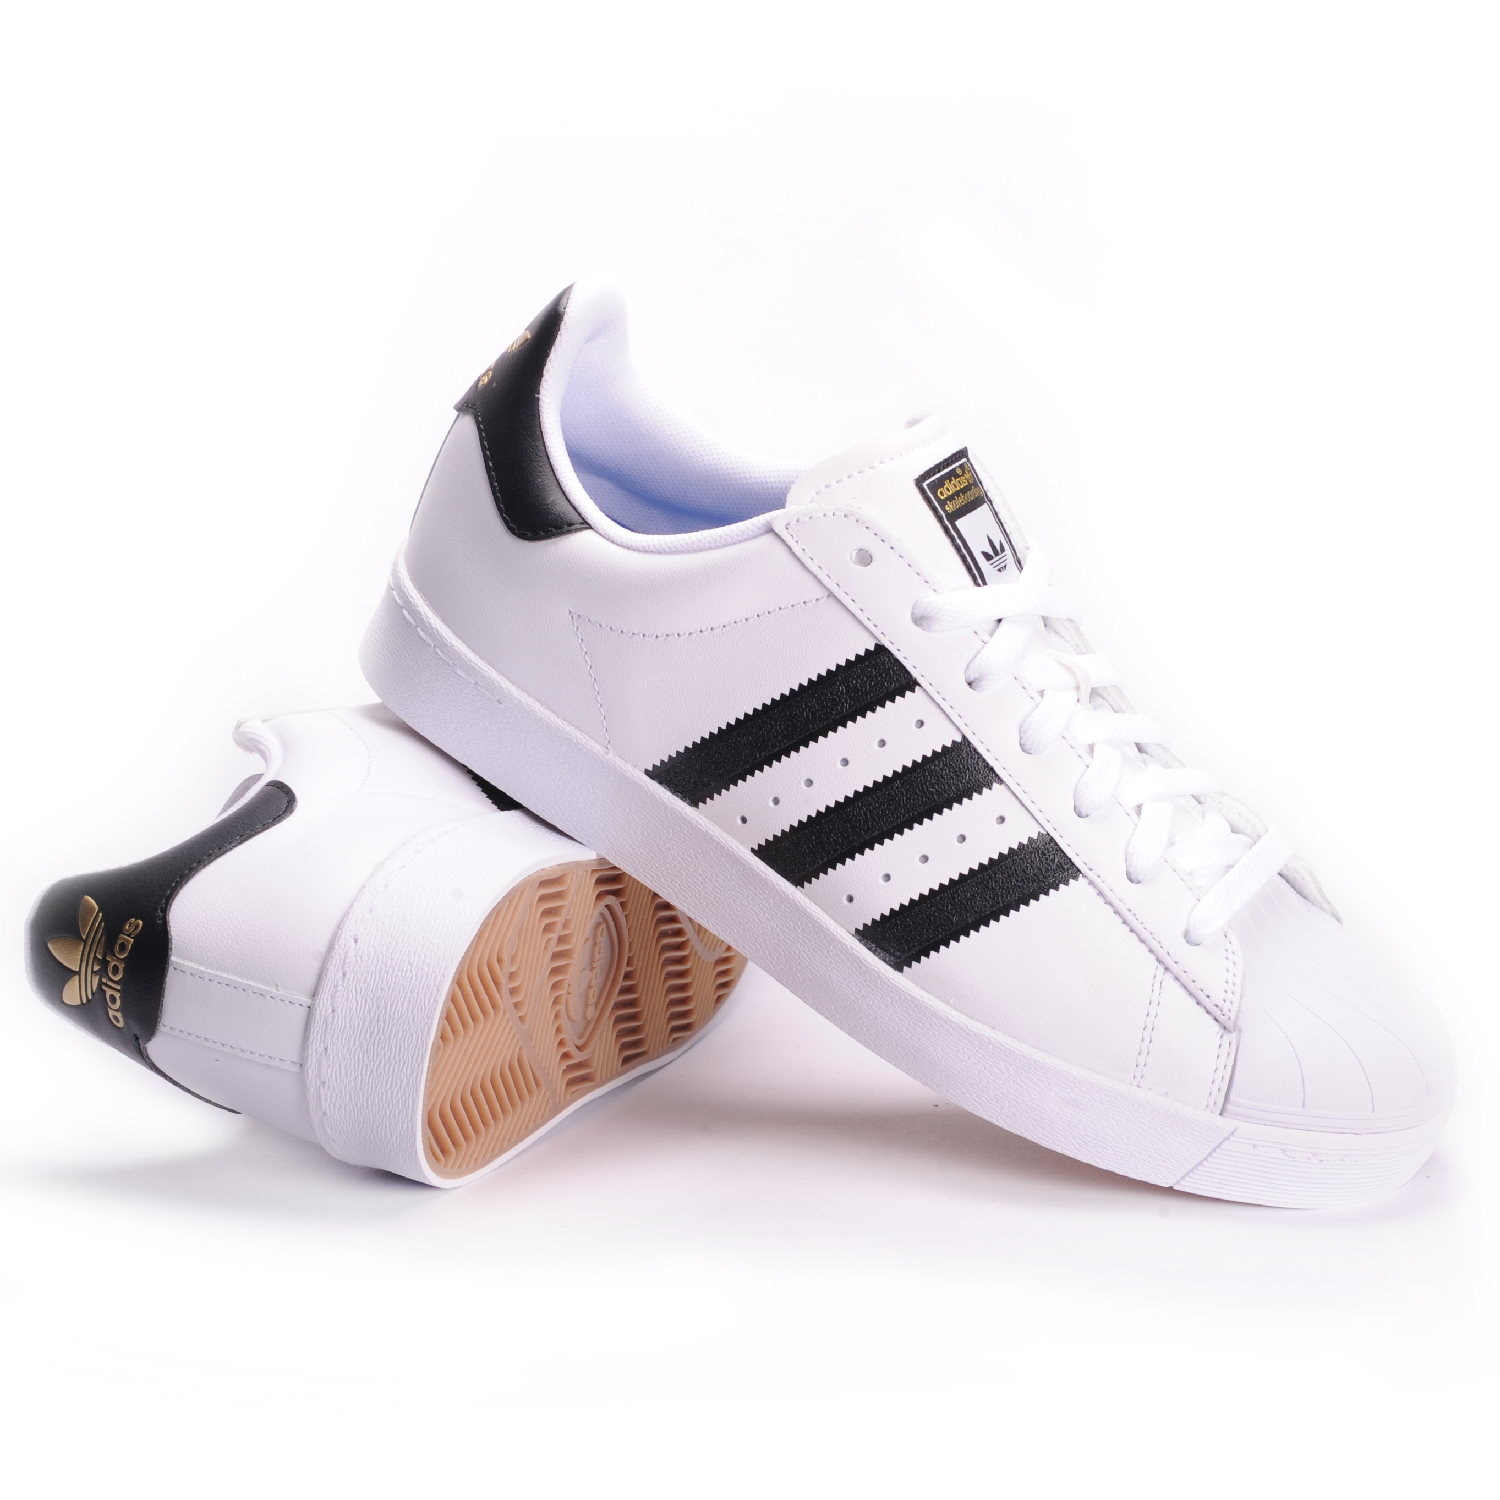 Adidas Shoes Buy Men & Women Adidas Shoes Online in India